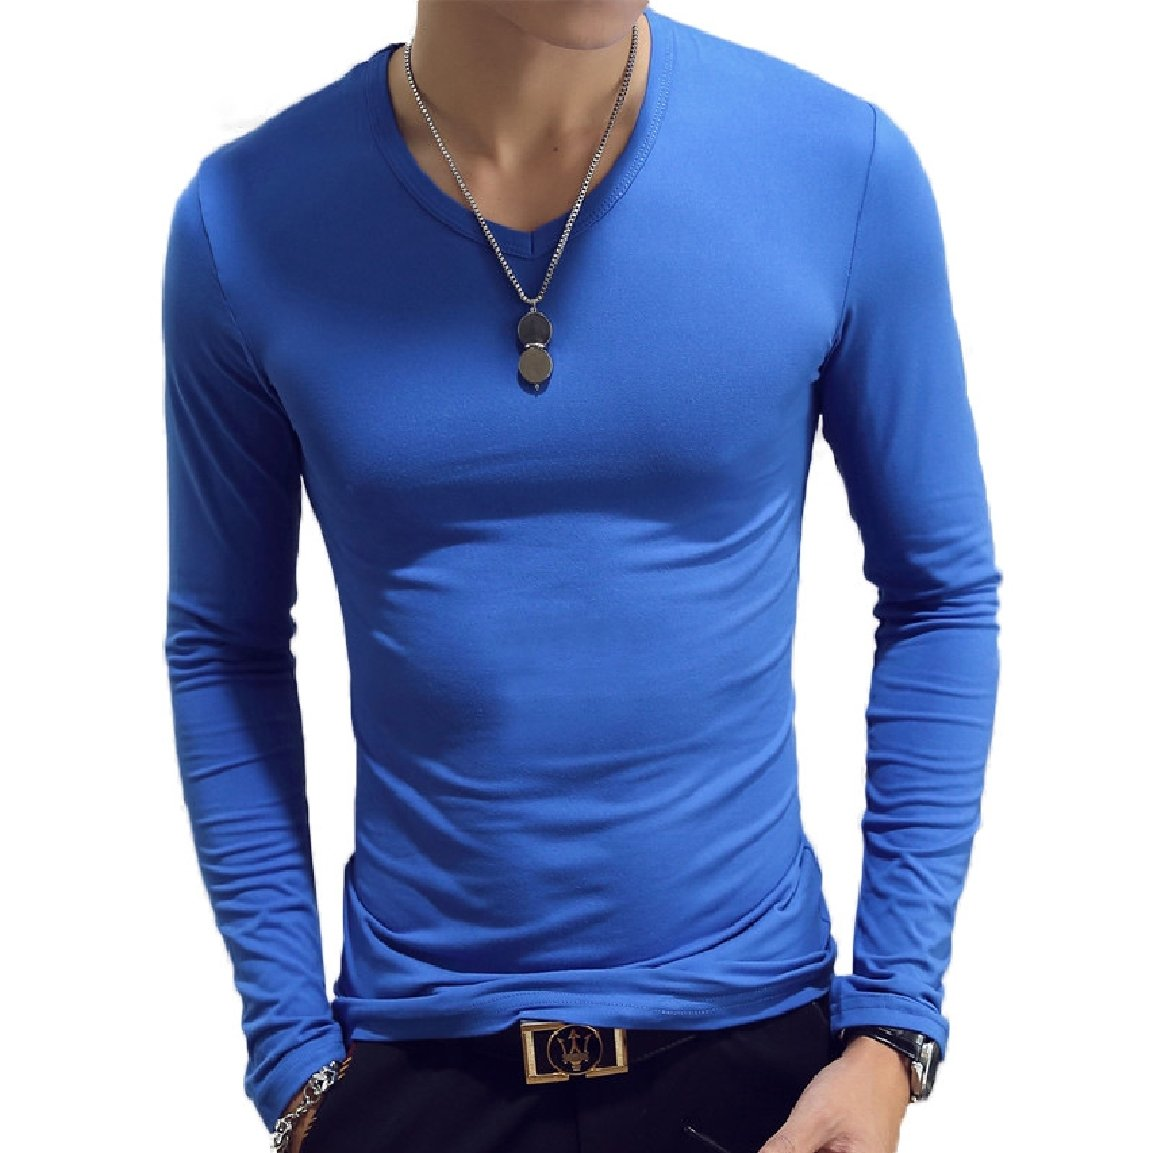 RomantcMen Comfort Comfort Solid Relaxed-Fit Regular T-Shirt Top 6 L by RomantcMen (Image #1)